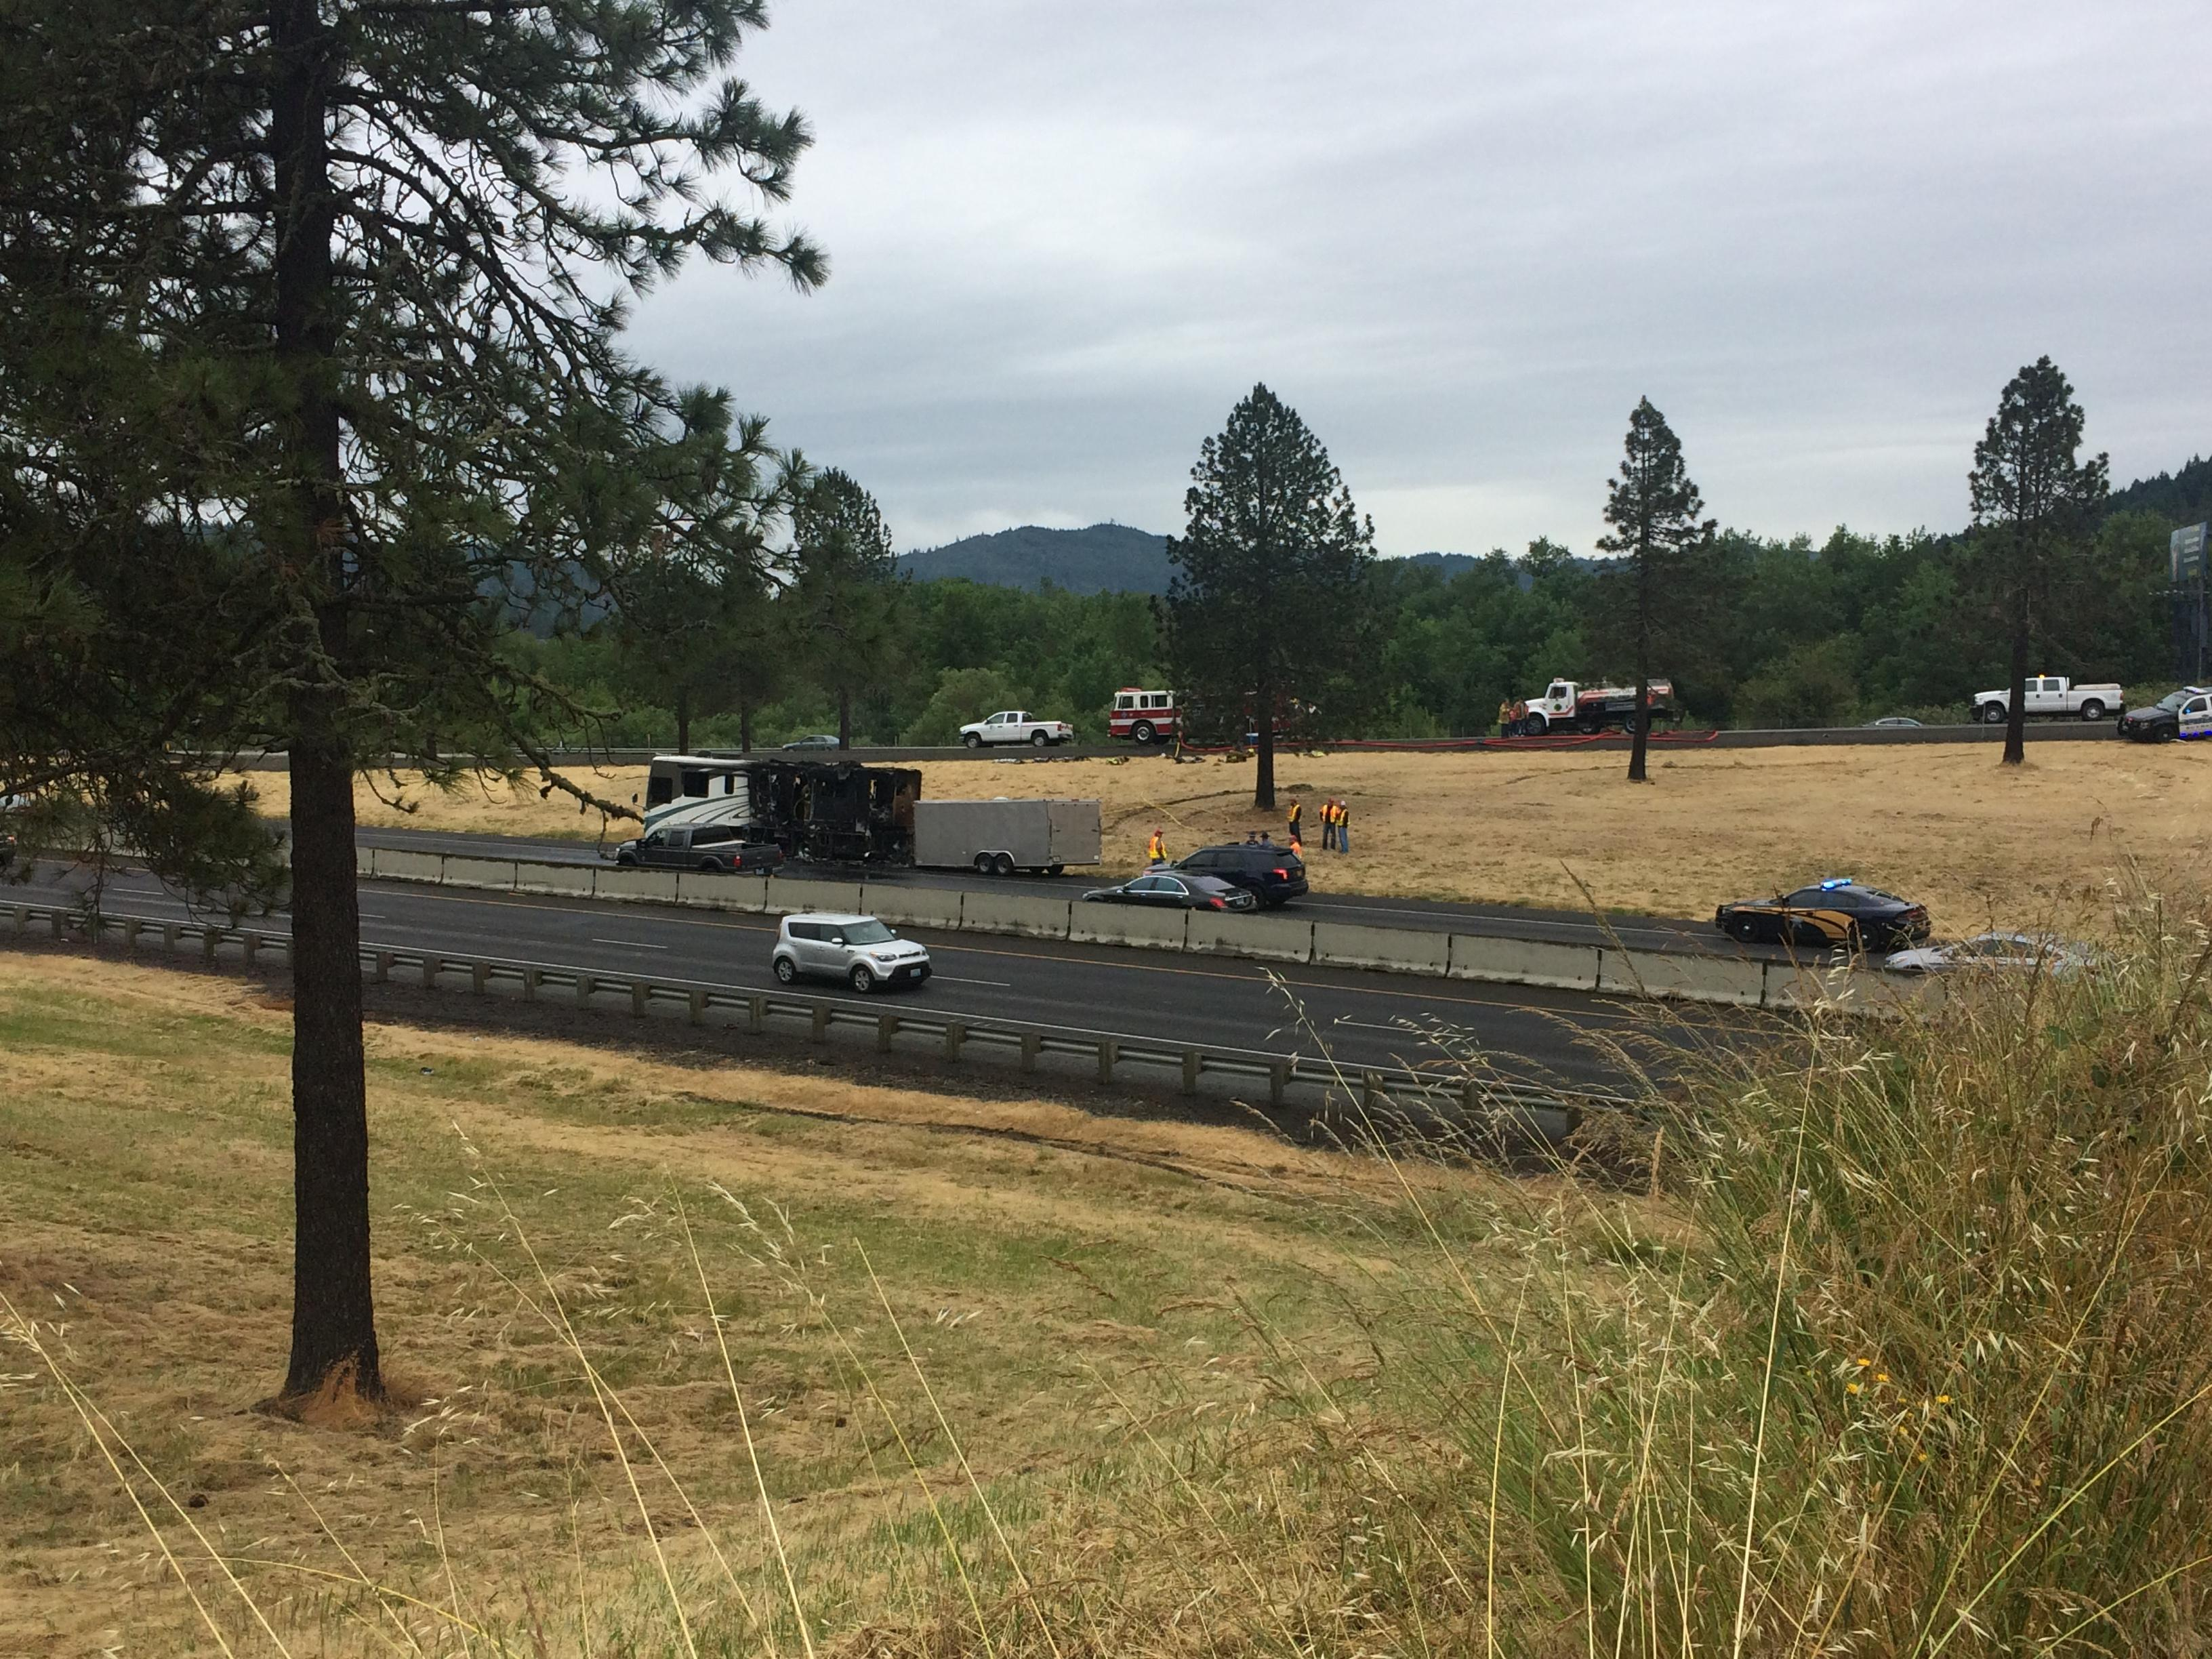 An RV caught fire on Interstate 5 northbound Thursday morning, causing traffic to back up for miles.  A couple and several cats and dogs were in the RV at the time. They escaped injury, Oregon State Police said. (SBG)